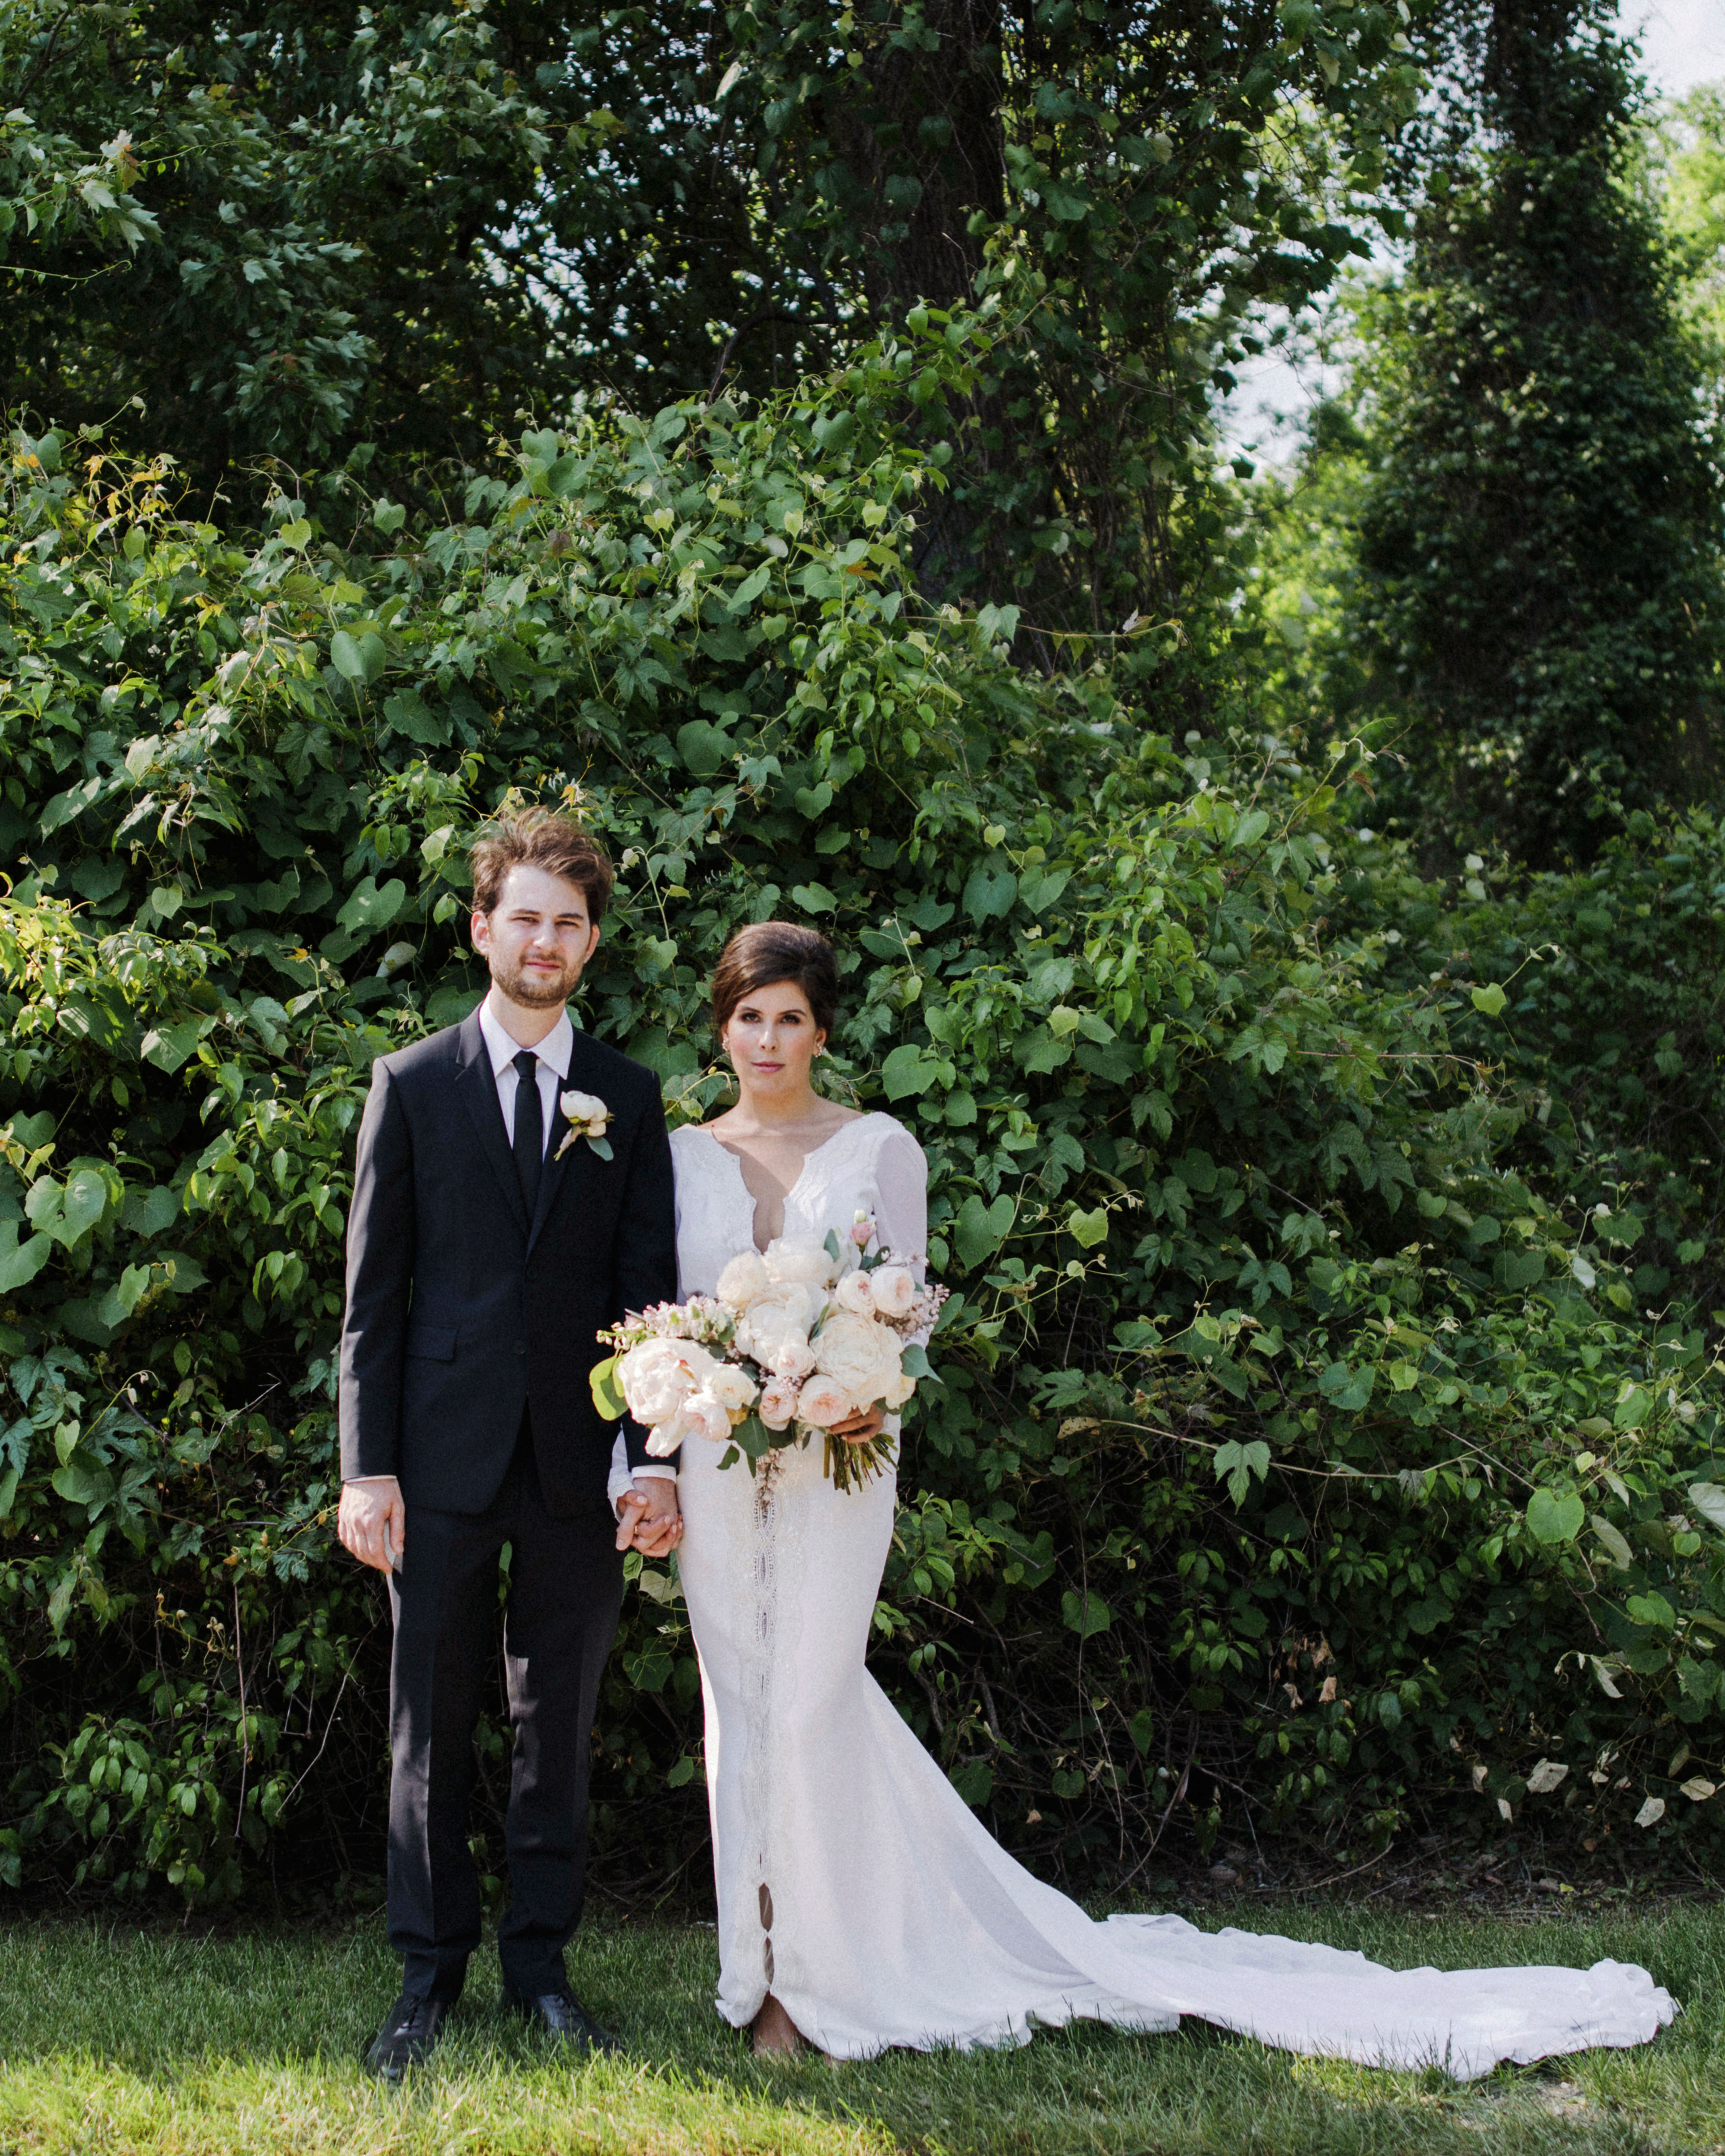 eden jack wedding couple serious greenery